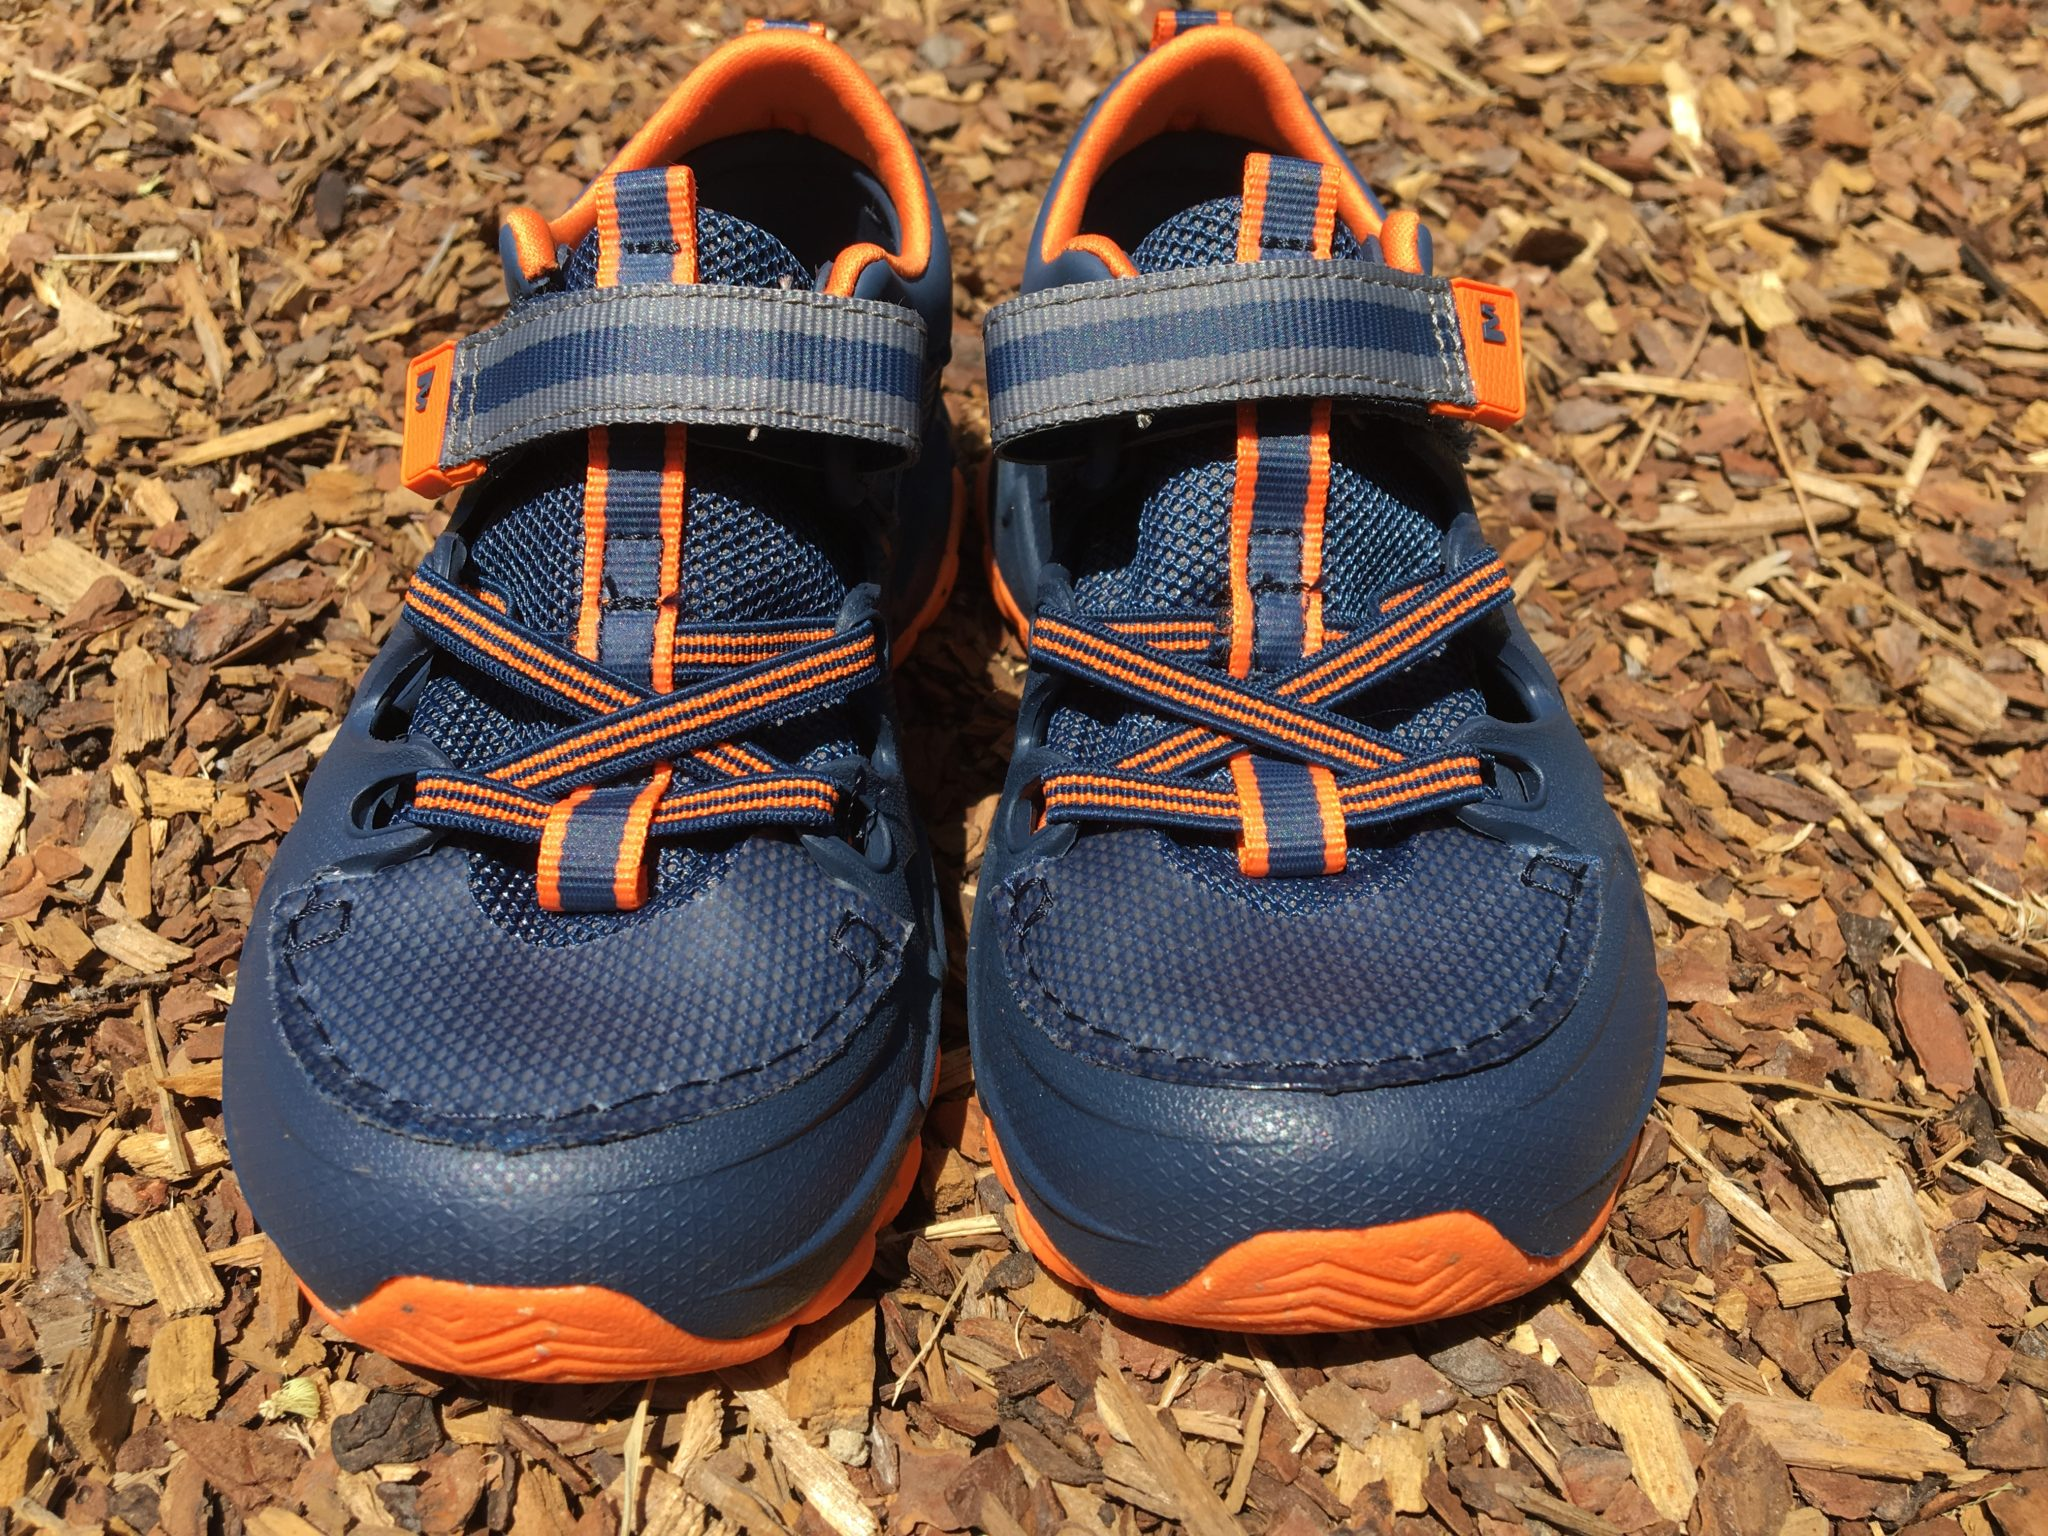 Merrell Kids Hydro 2.0 Review